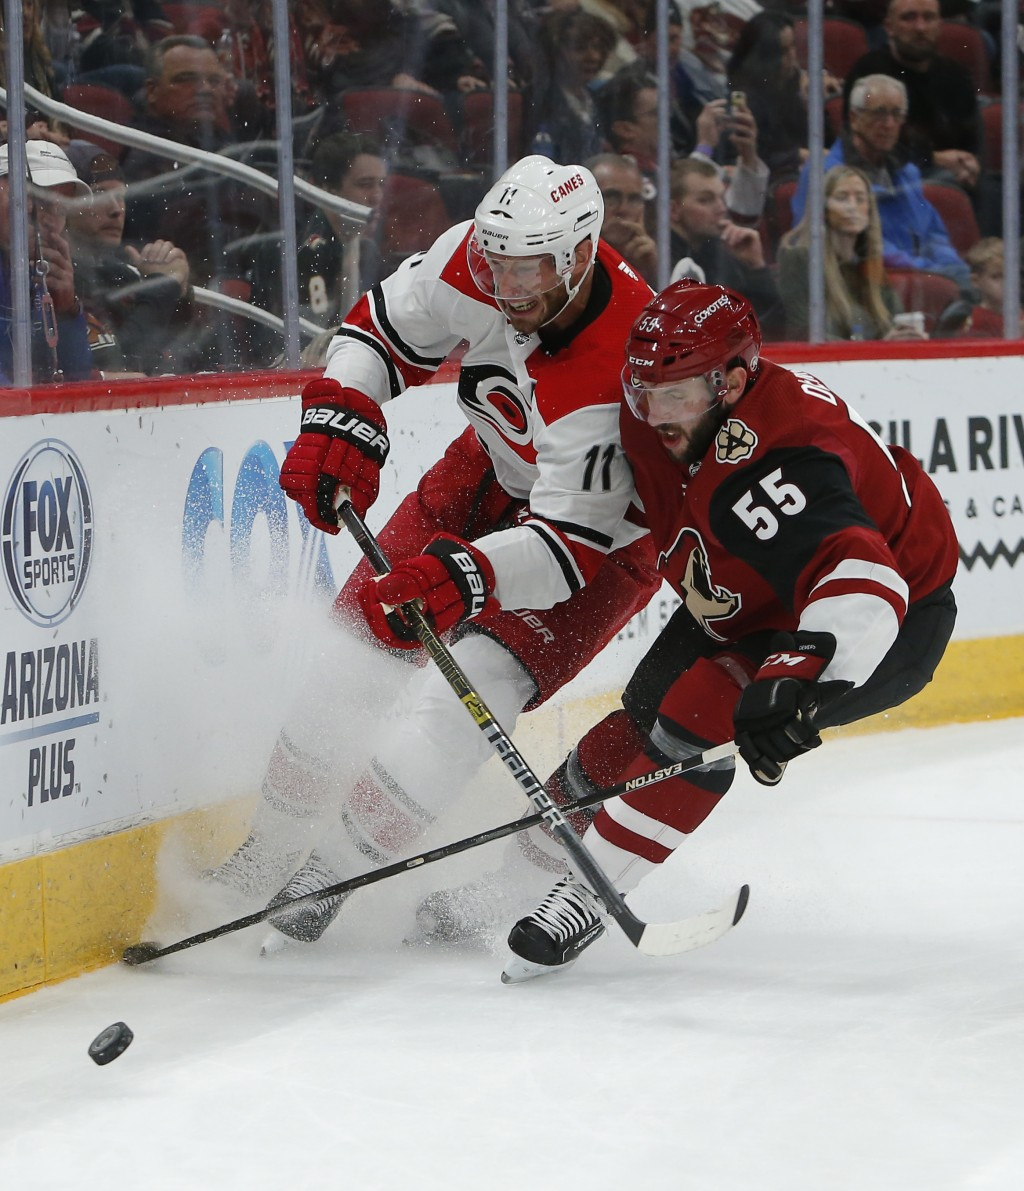 Carolina Hurricanes center Jordan Staal (11) and Arizona Coyotes defenseman Jason Demers vie for the puck during the first period of an NHL hockey gam...